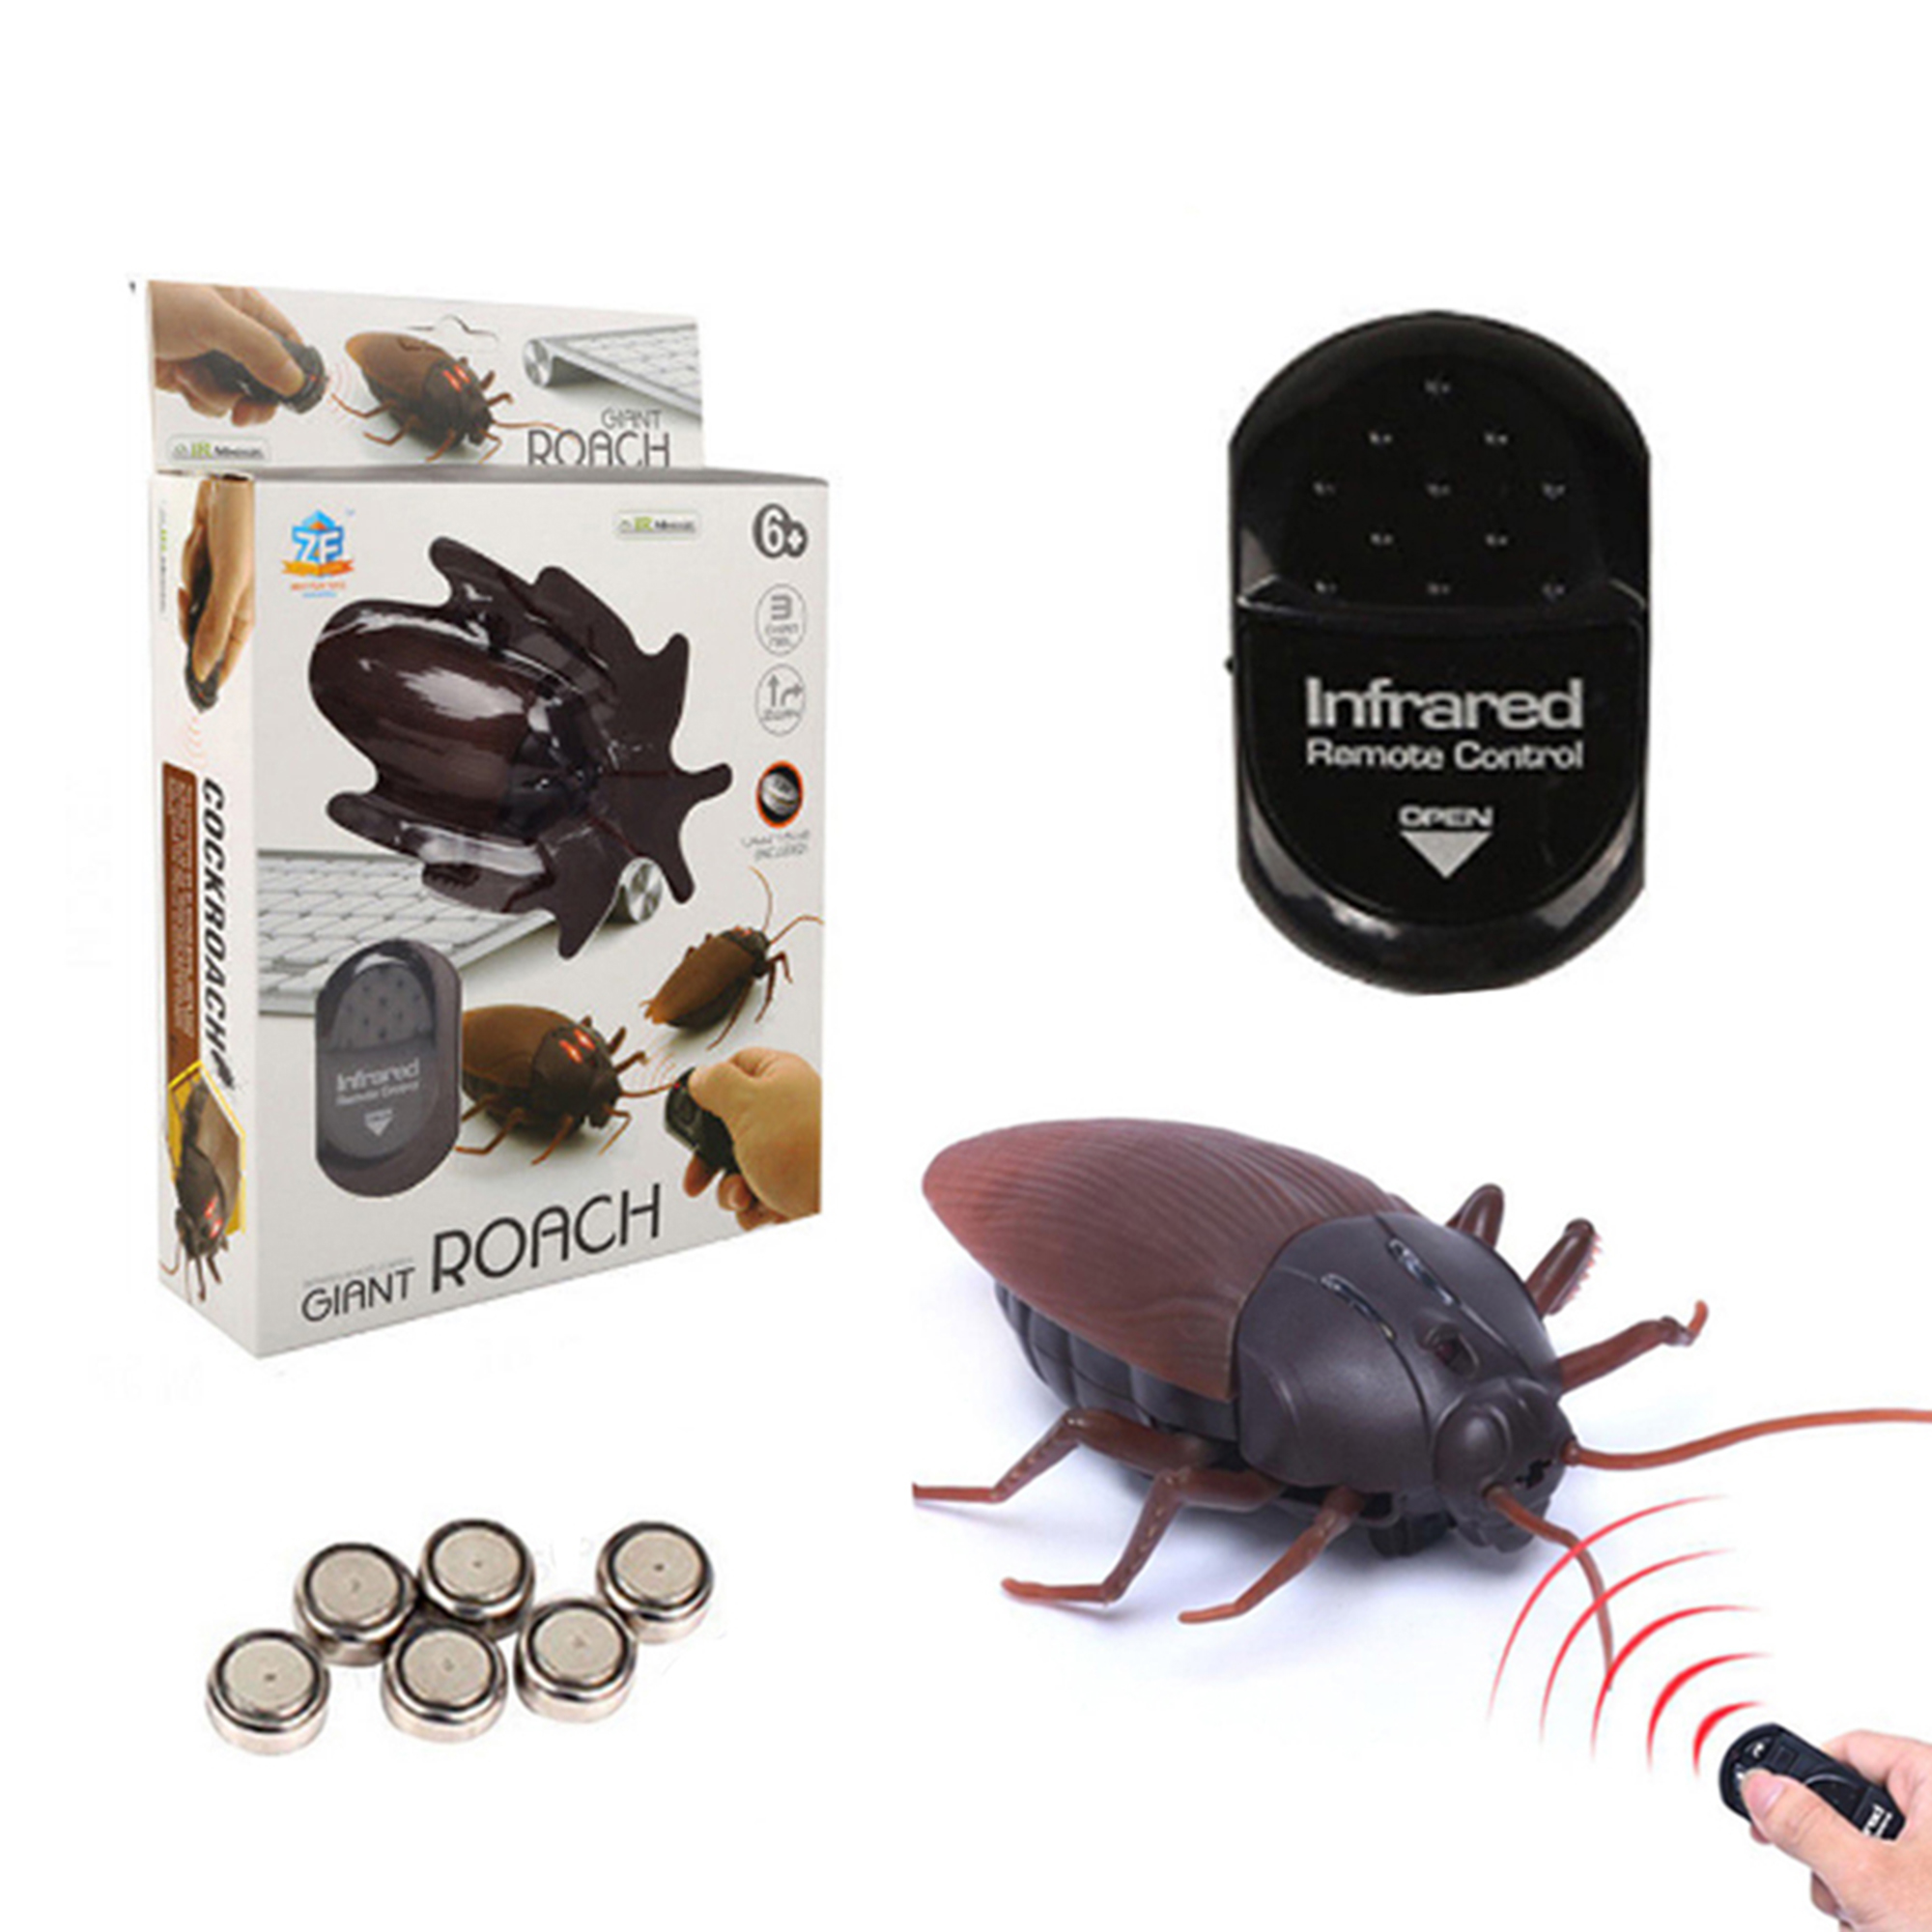 Deago Infrared Remote Control Fake Cockroach RC Toy Prank Insect Scary Trick Bugs for Party